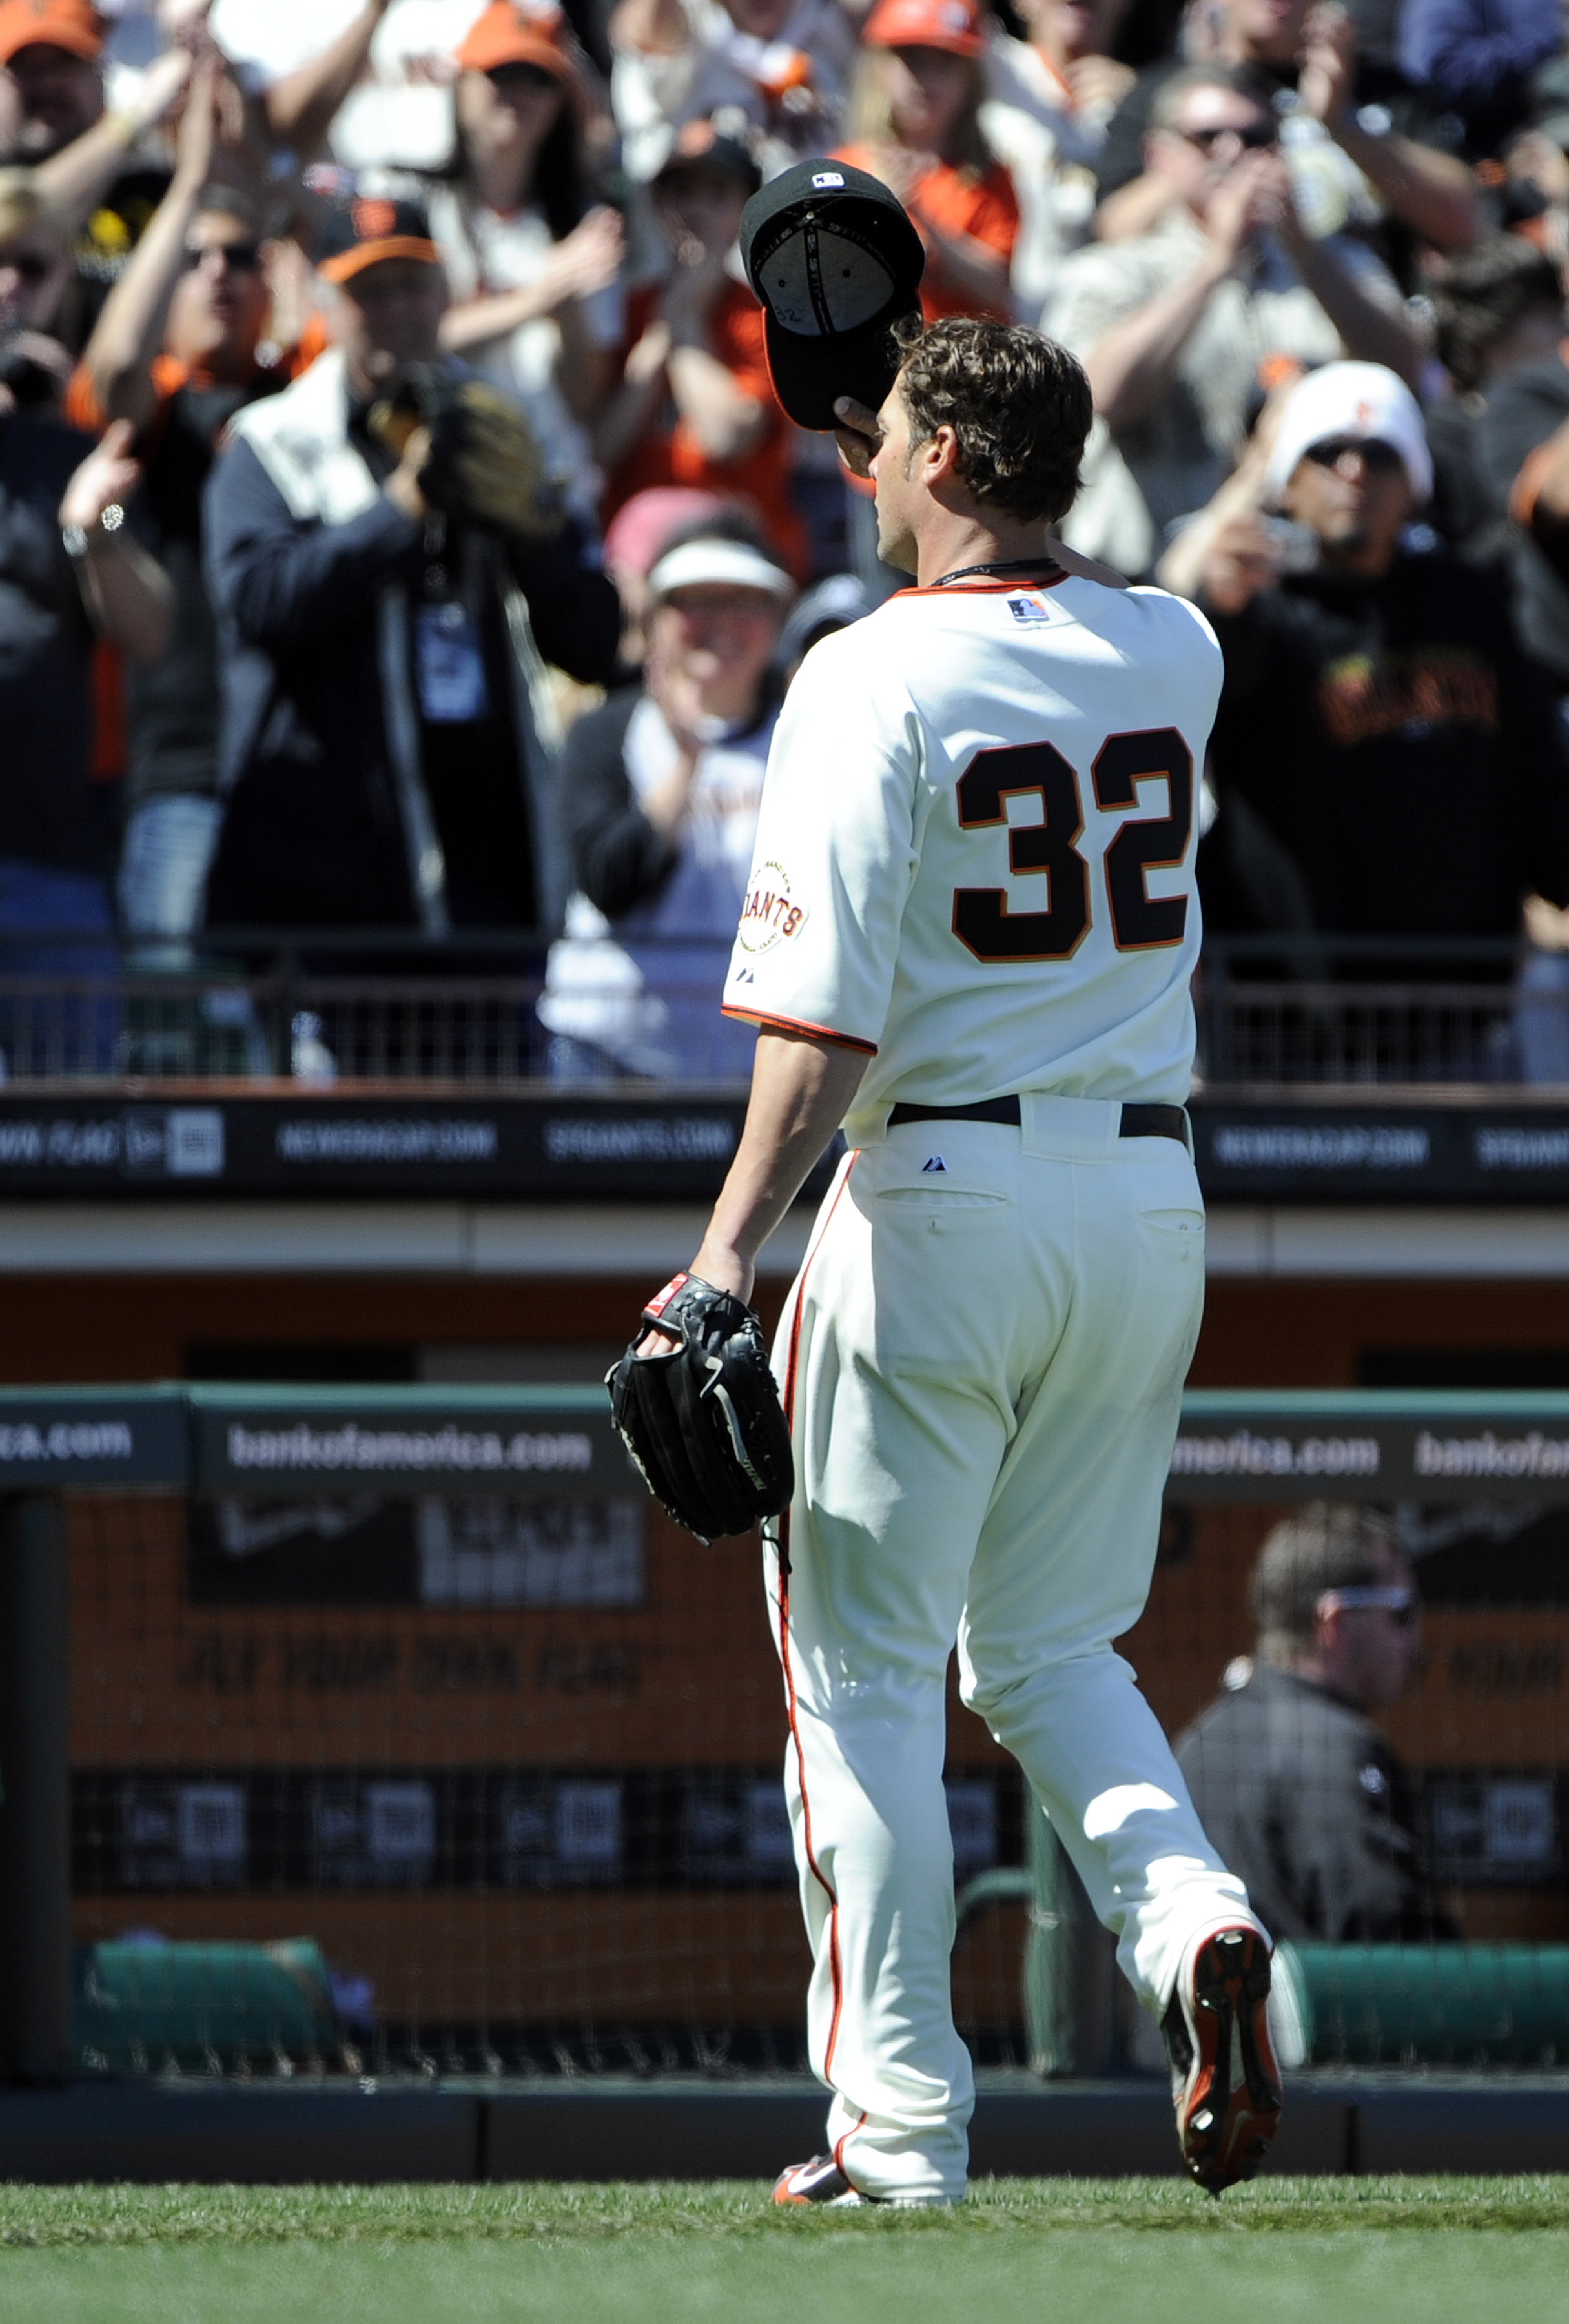 SAN FRANCISCO, CA - MAY 8: Ryan Vogelsong #32 of the San Francisco Giants tips his hat to the crowd after coming out of the game in the top of the seventh inning against Colorado Rockies at AT&T Park May 8, 2011 in San Francisco, California. The Giants wo